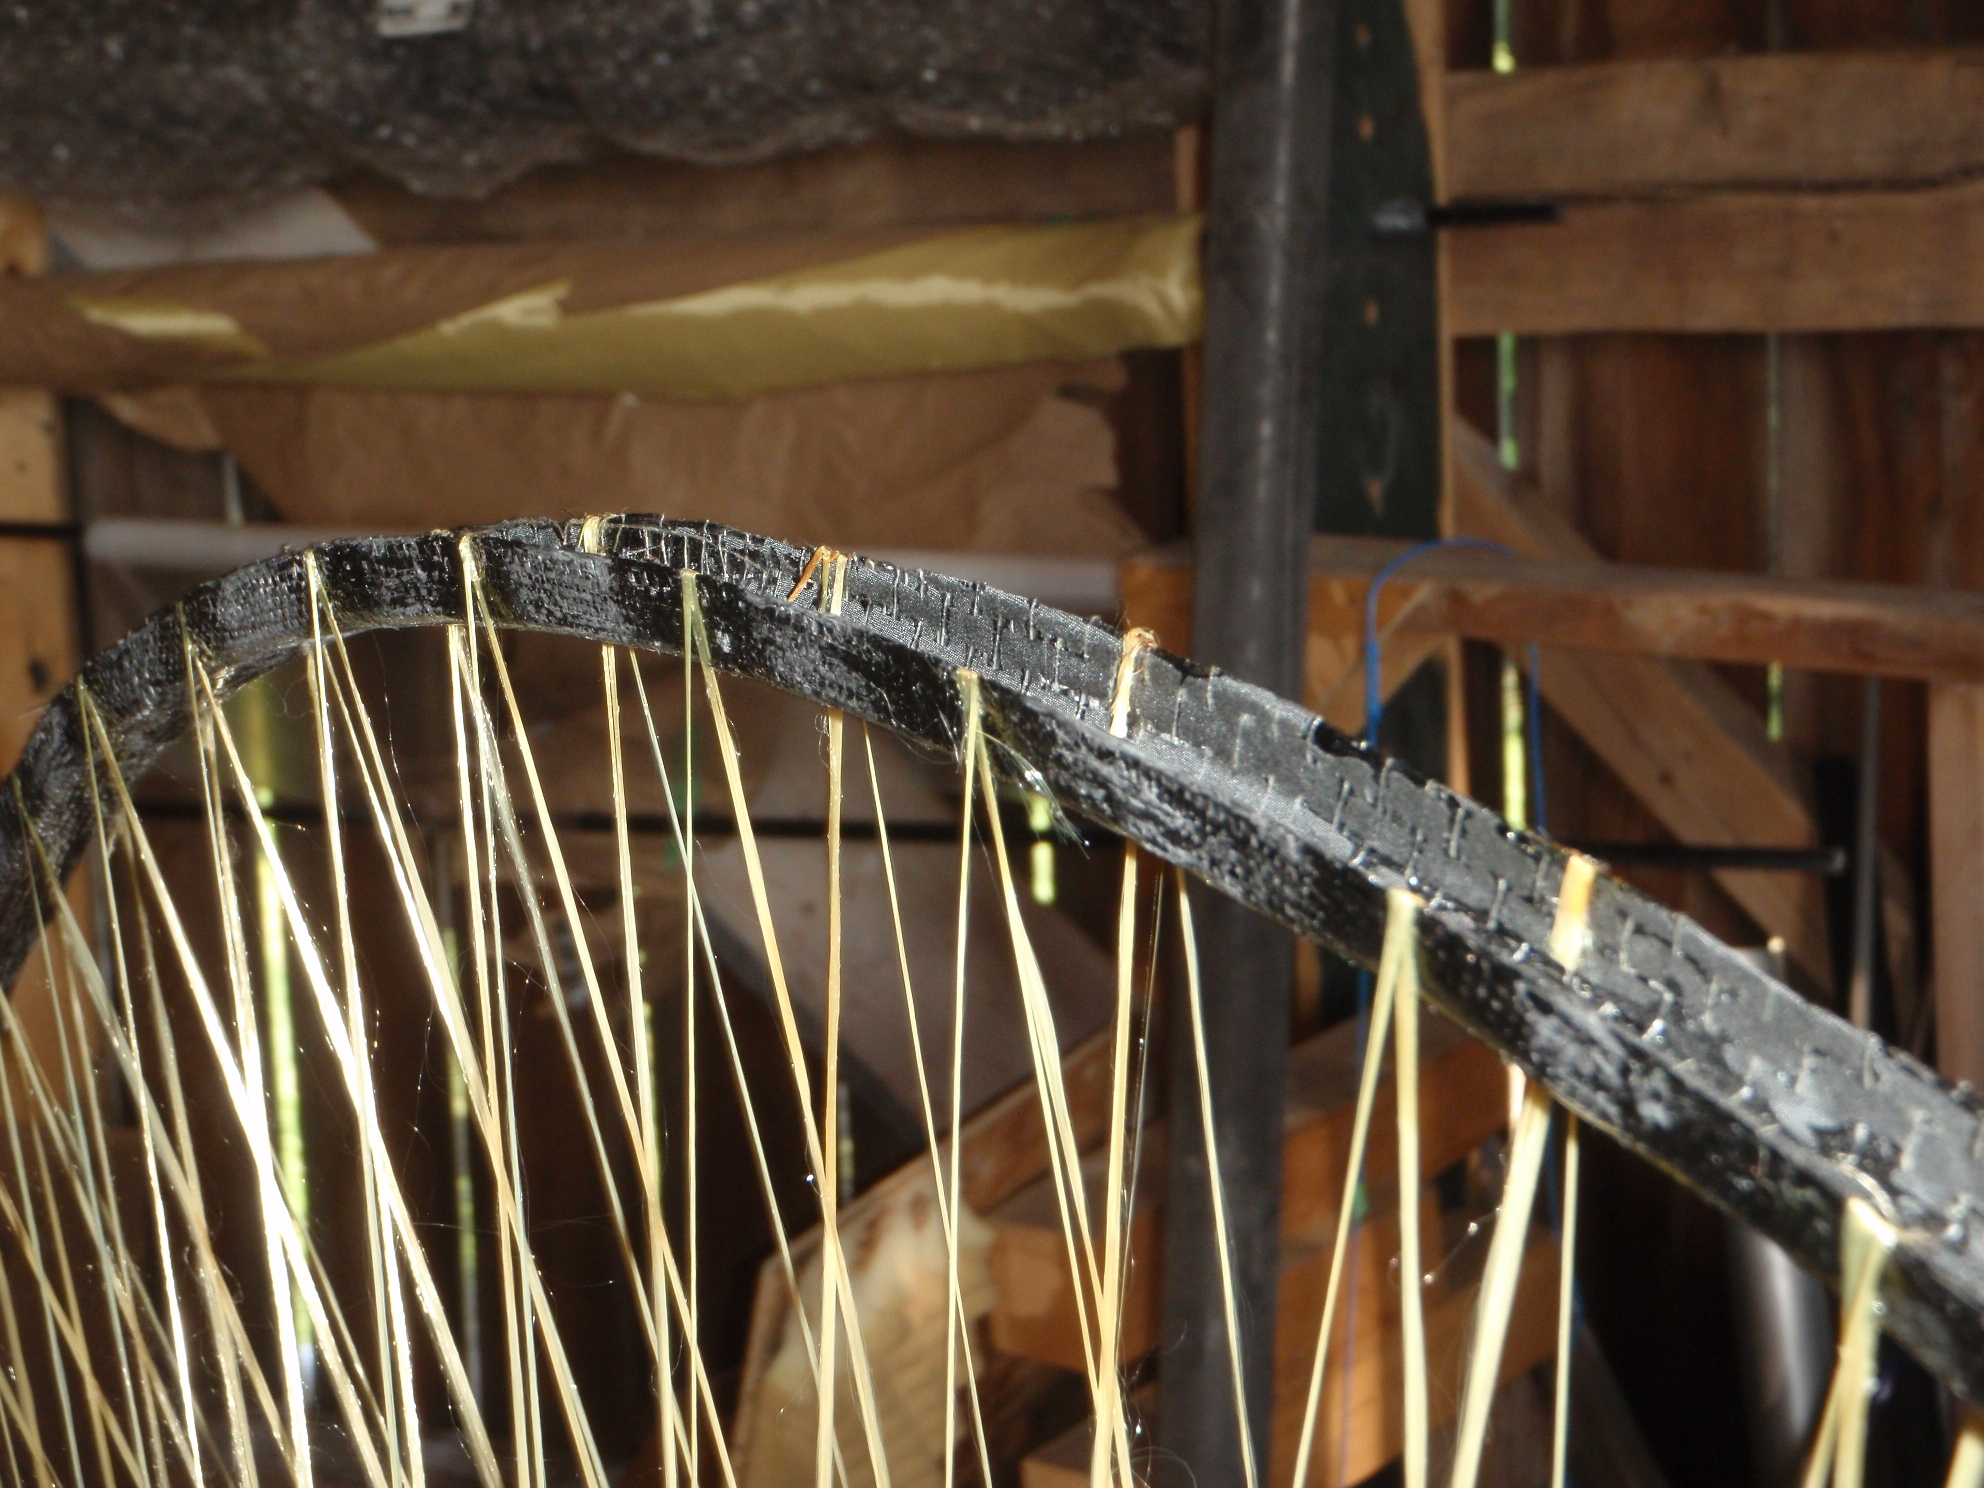 Shown is the rim of the completed spool. Note the crossover point of the original set of spokes. Also note the difference in the bond angle between the inner spokes and the outer spokes where they meet the rim.